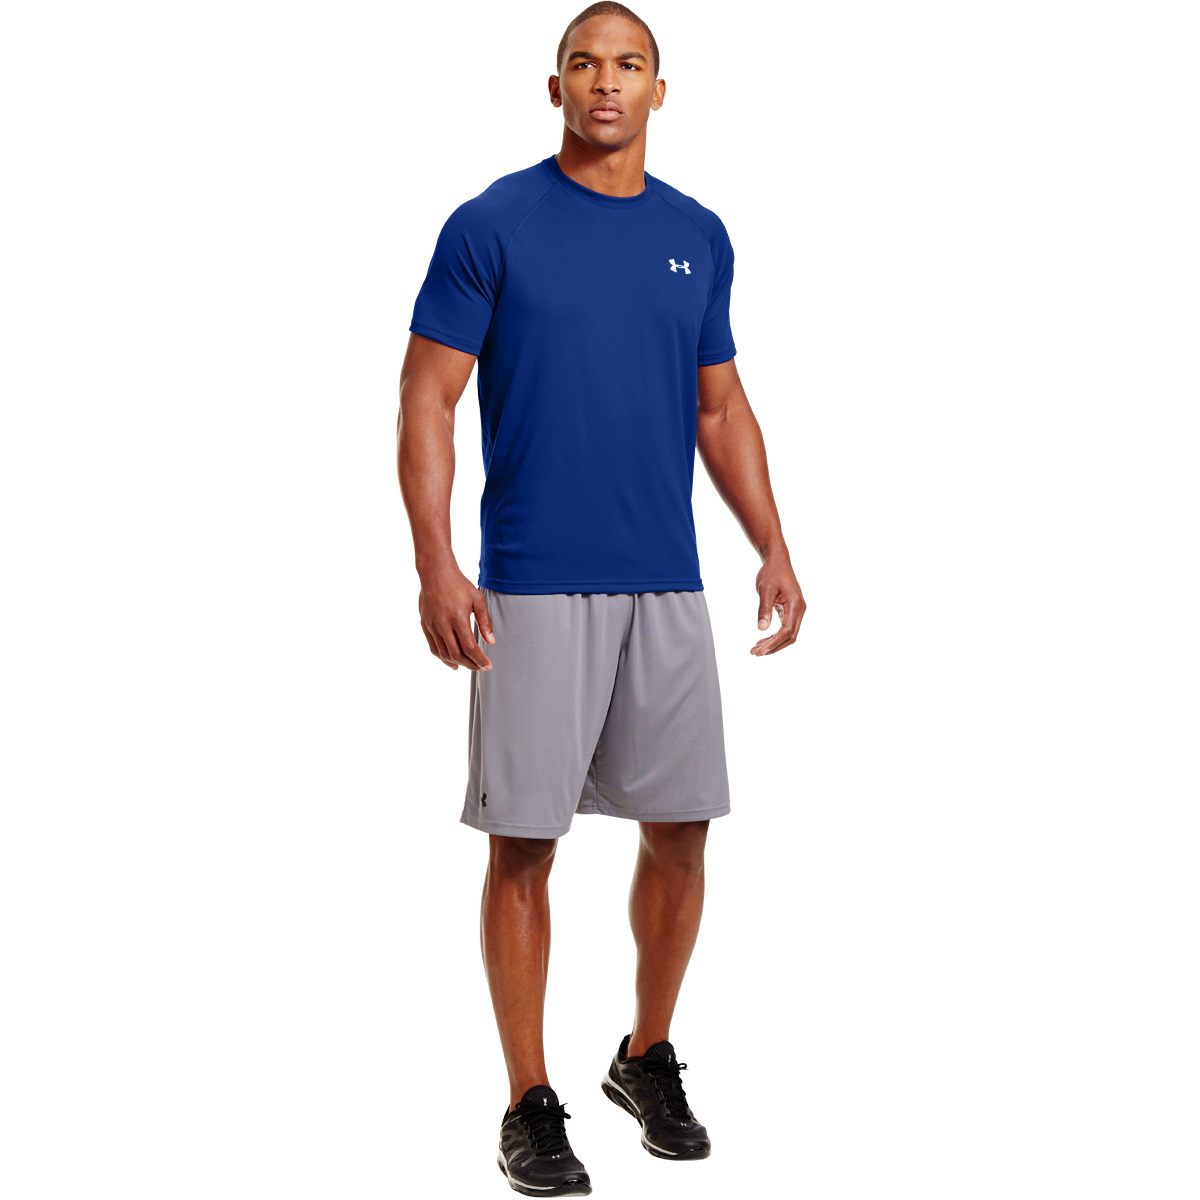 Under-Armour-Mens-UA-Tech-SS-T-Shirt-HeatGear-Training-31-OFF-RRP thumbnail 83